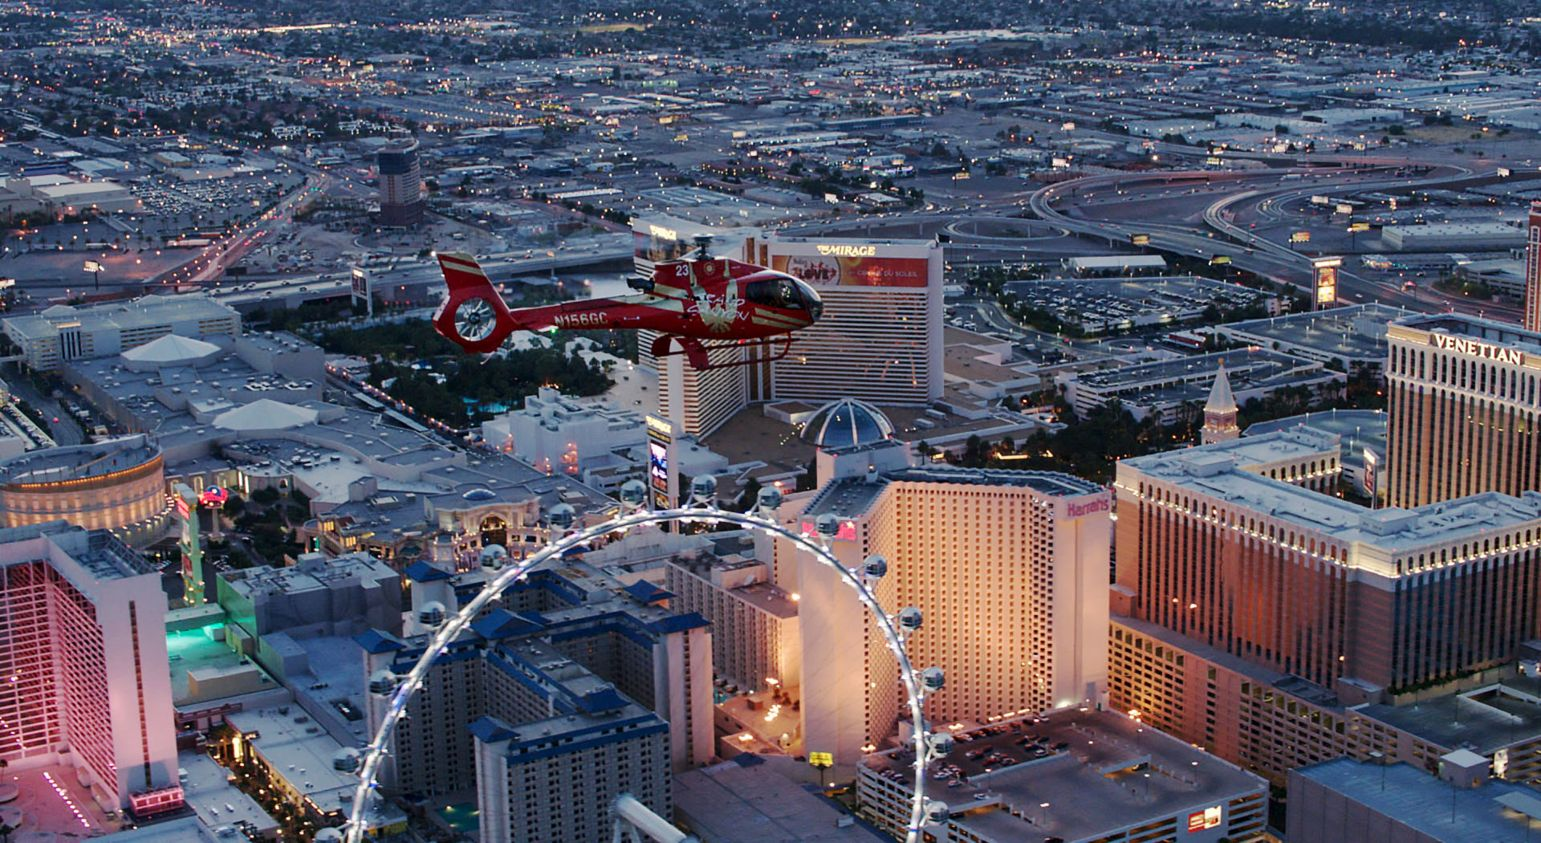 Helicopter flying past the LINQ hotel on the Las Vegas Strip.